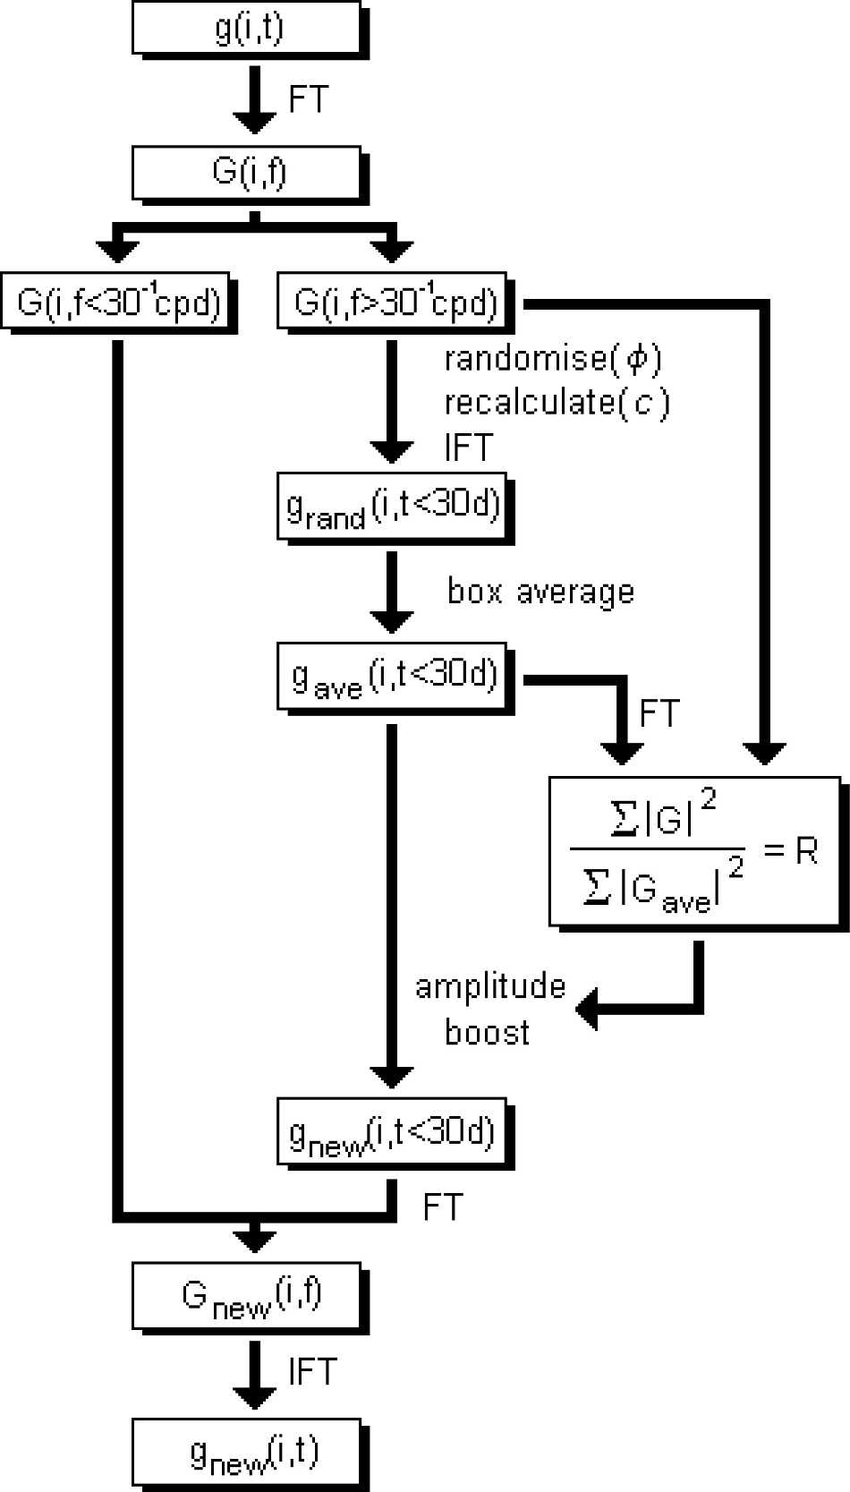 FIG. 7. Flow diagram, describing the process of